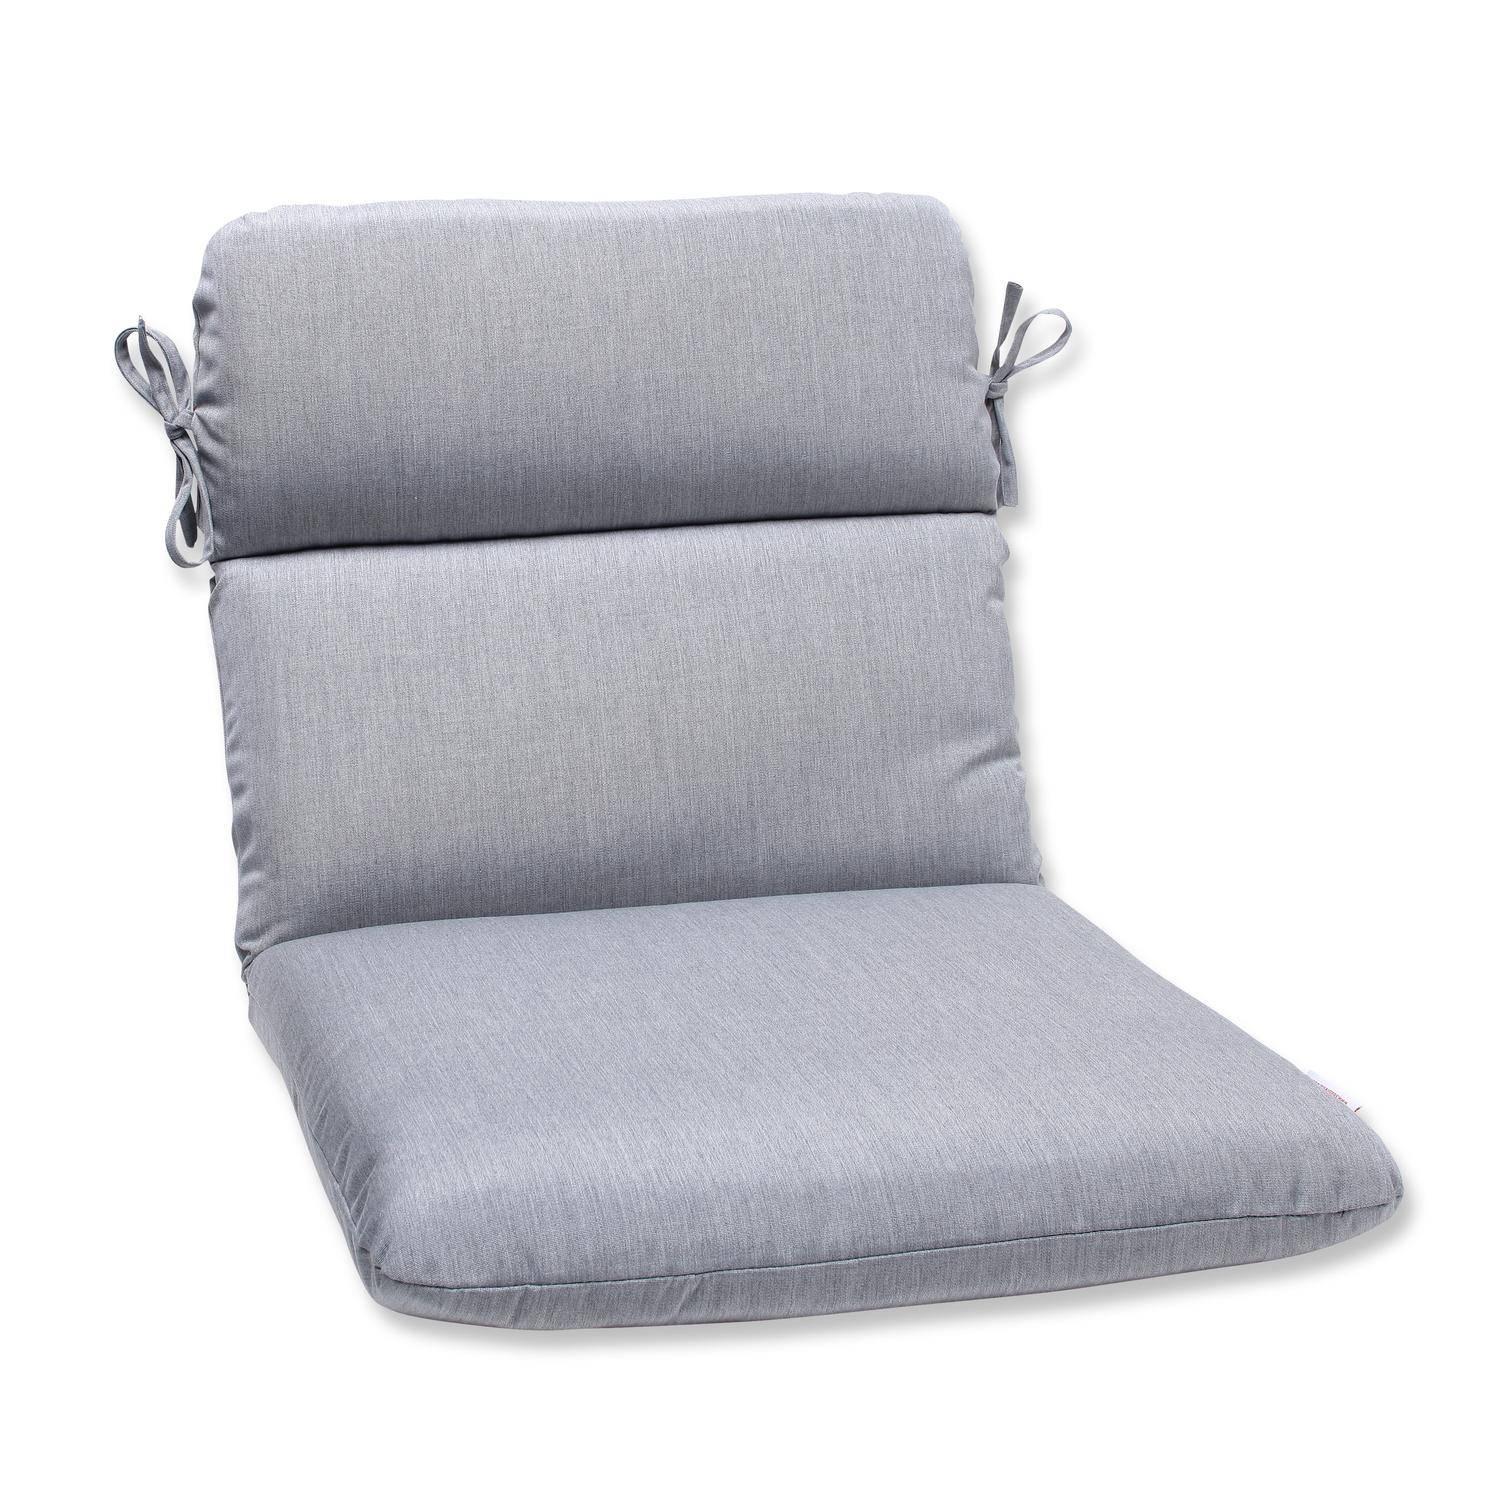 Gray Chair Cushions 40 5 Quot Sunbrella Gray Outdoor Patio Rounded Chair Cushion